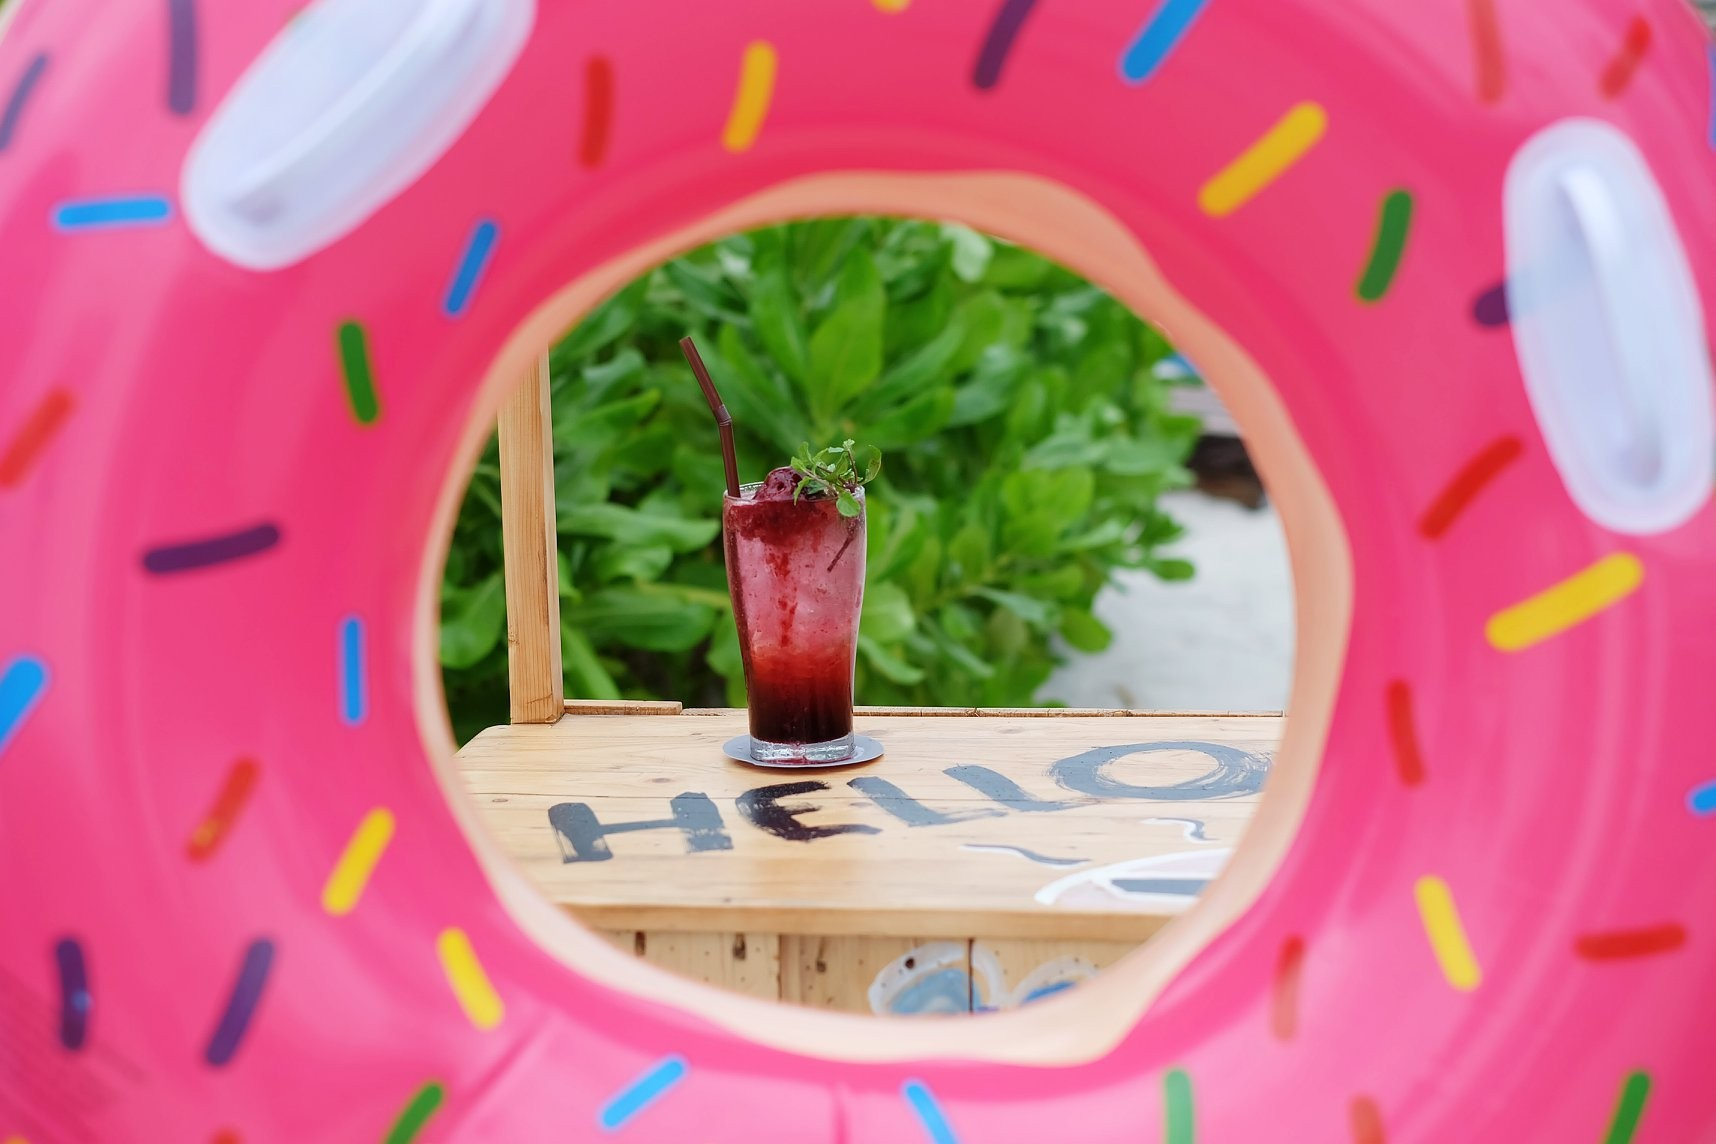 Stylish and instagrammable beach cafe at Hua Hin